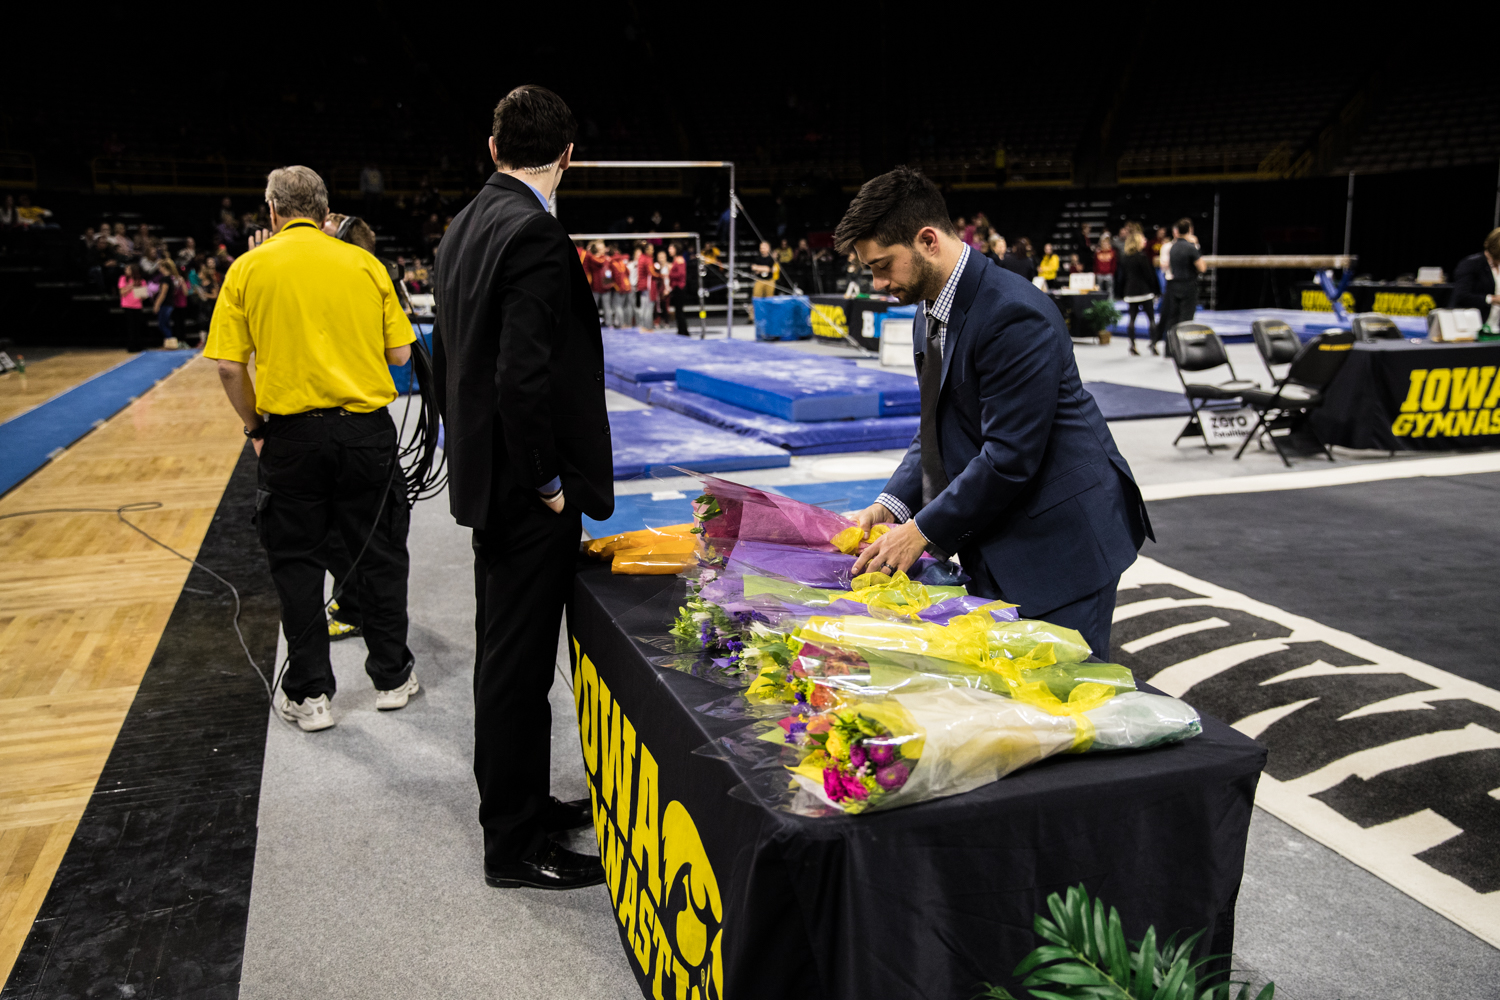 Flowers+are+arranged+after+a+women%27s+gymnastics+meet+between+Iowa+and+Iowa+State+at+Carver-Hawkeye+Arena+on+Friday%2C+March+1%2C+2019.+The+Hawkeyes%2C+celebrating+senior+night%2C+fell+to+the+Cyclones%2C+196.275-196.250.